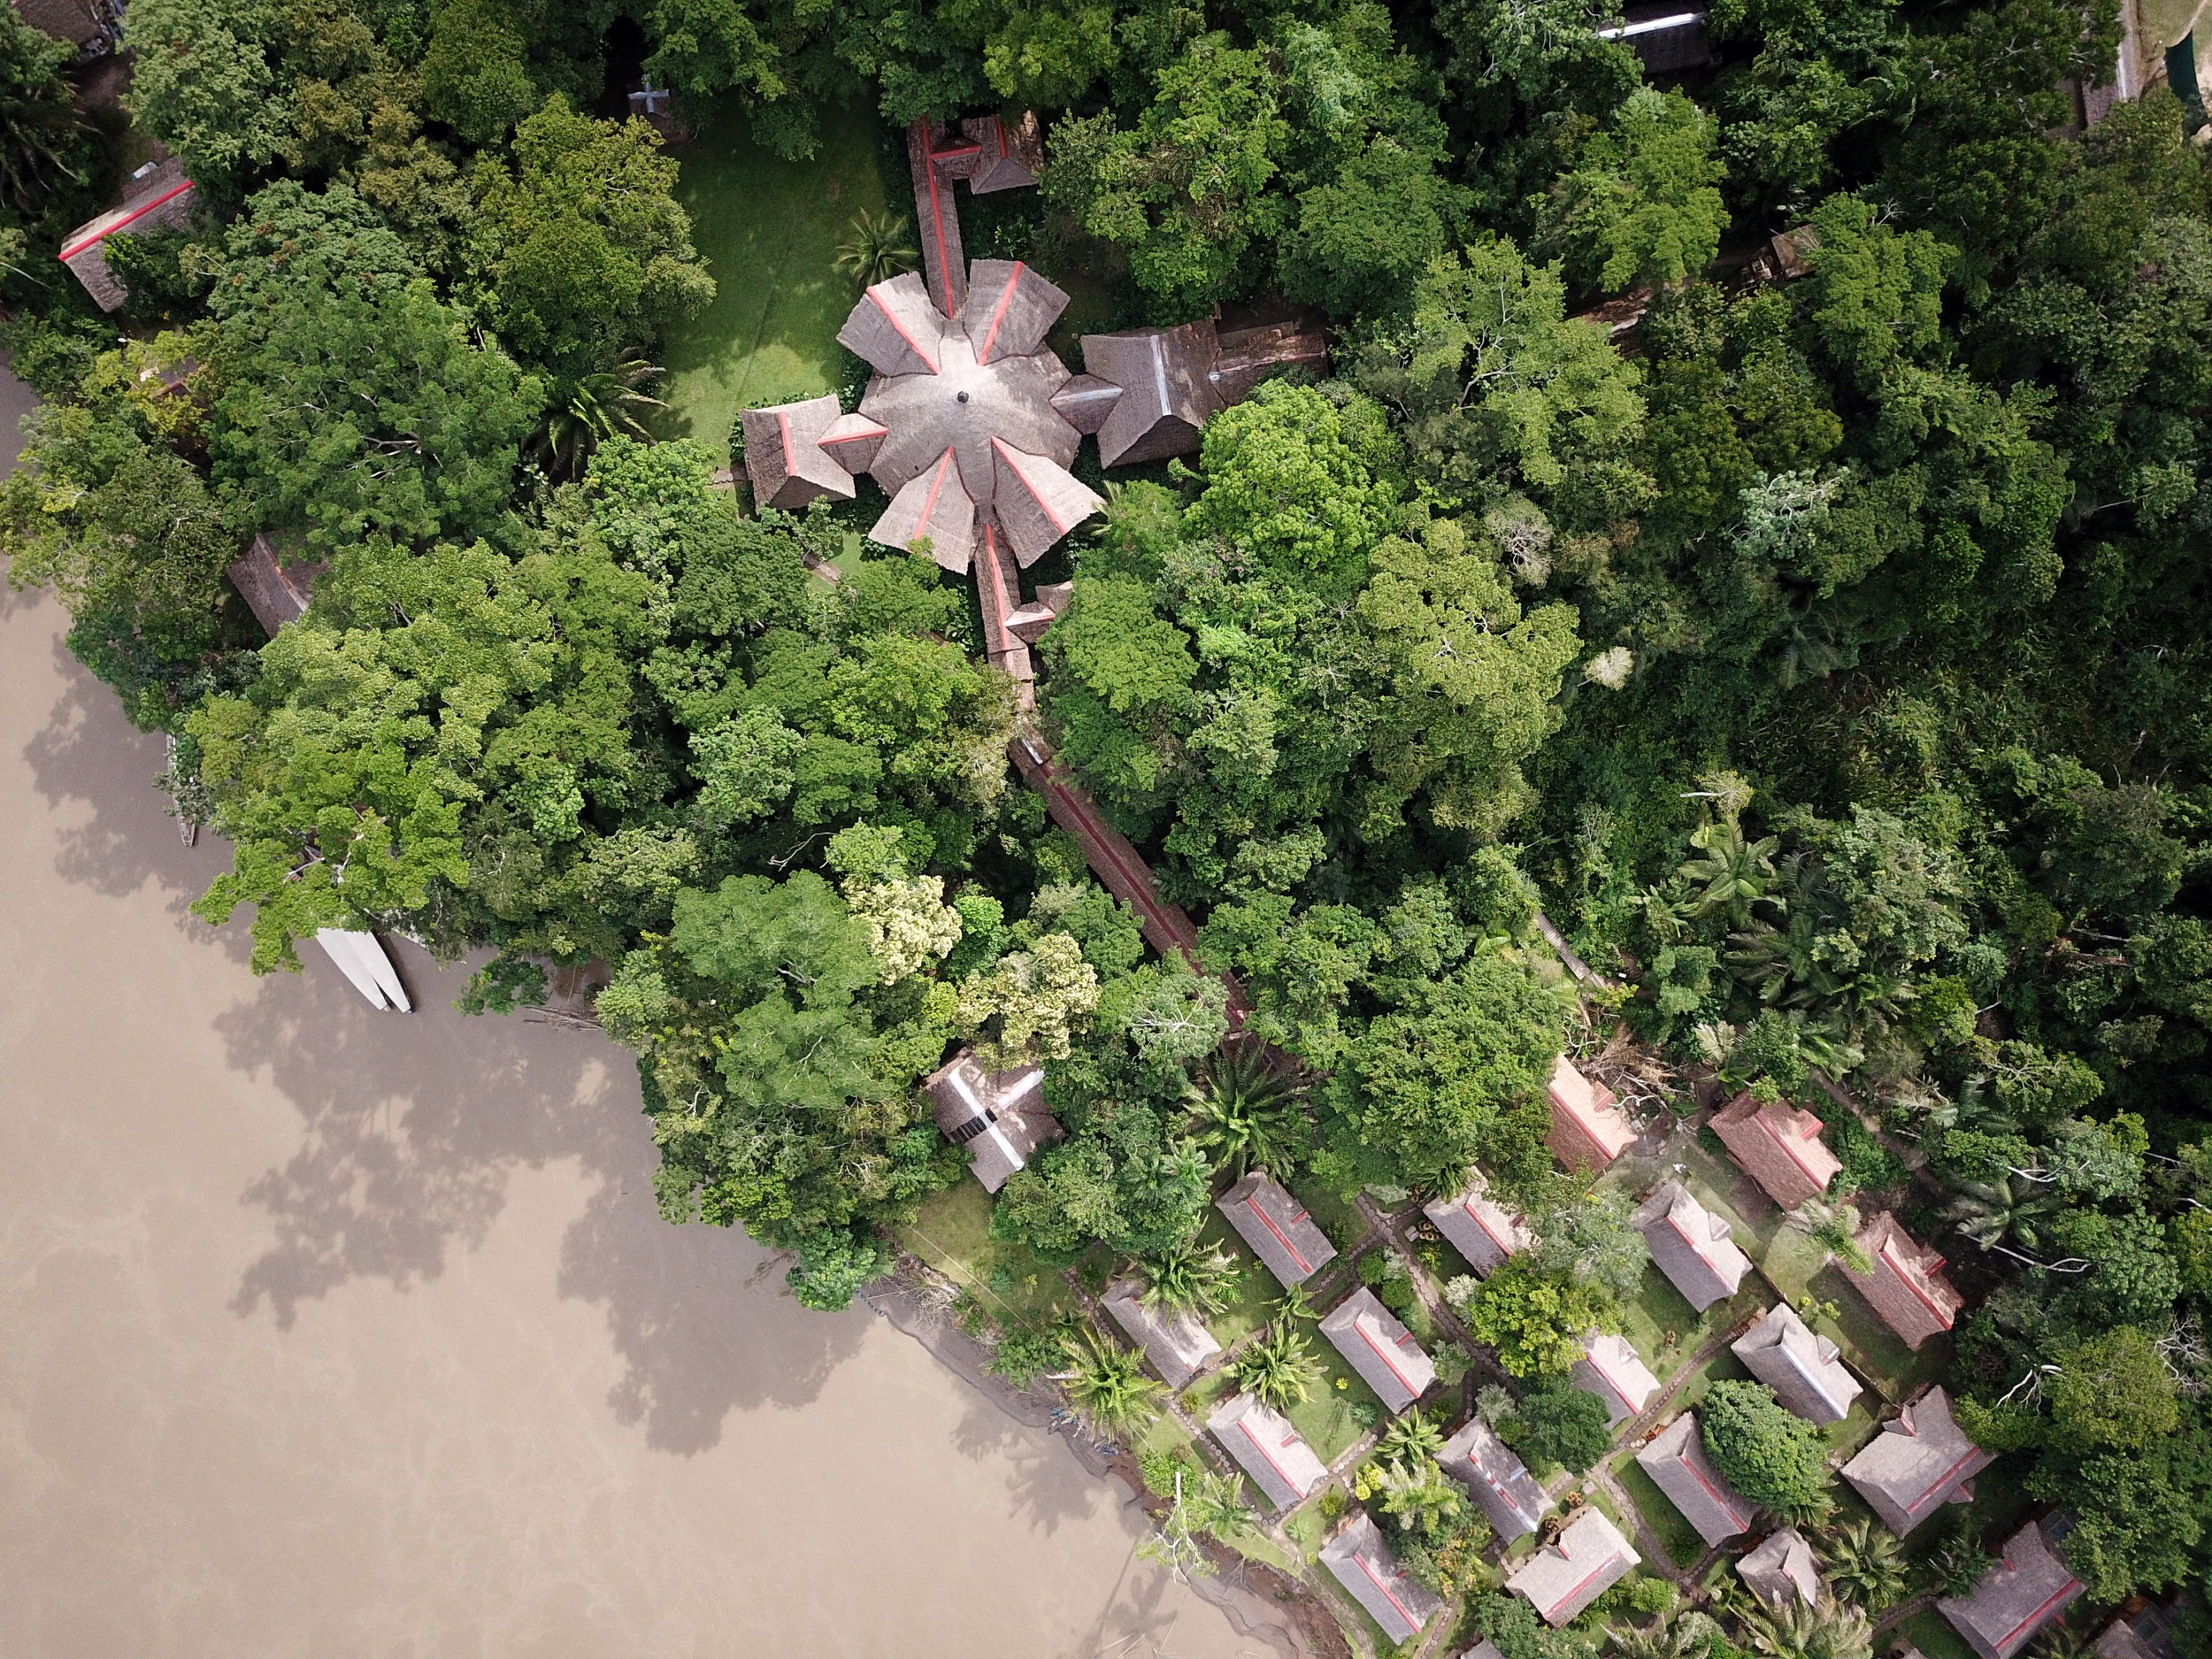 A drone's eye view of Inkaterra Reserva Amazonica along the banks of the Madre de Dios River